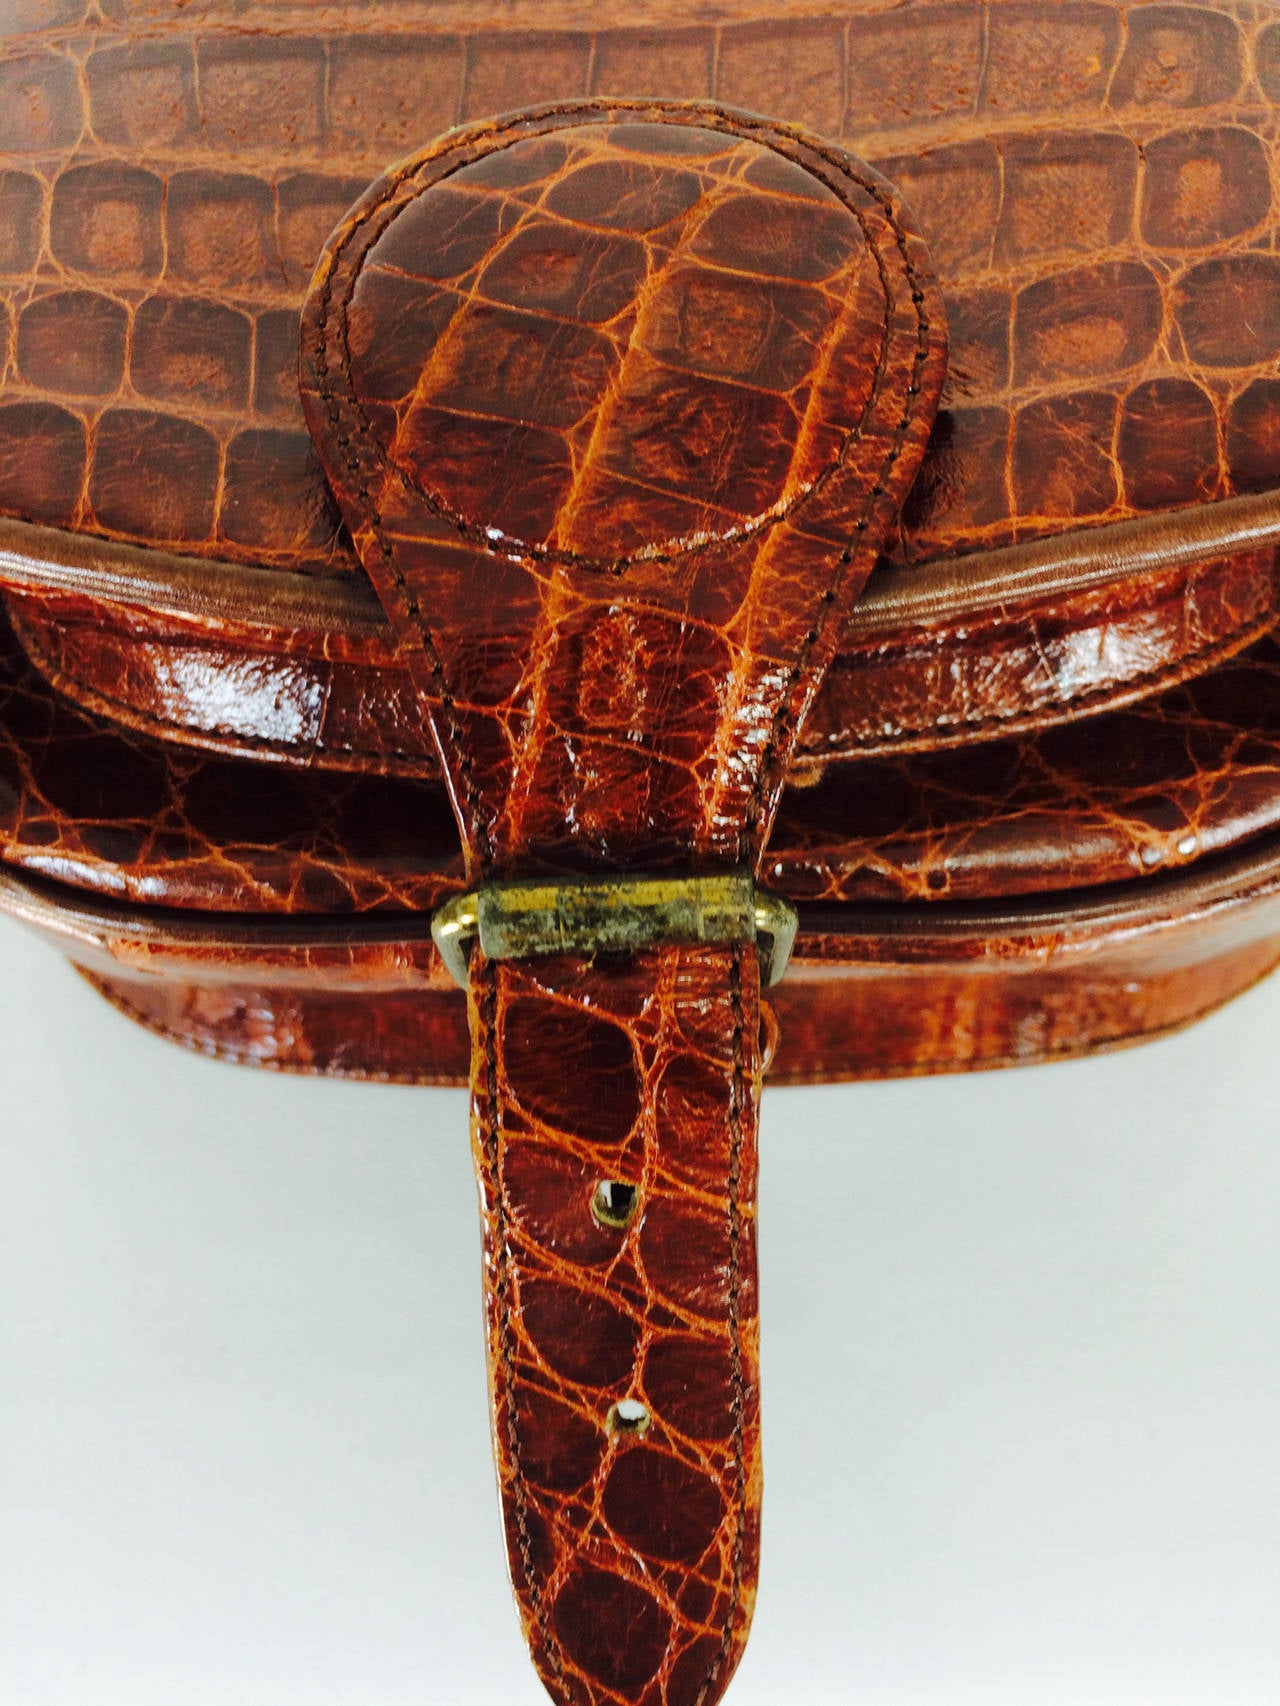 Saddle bag handbag cognac leather faux alligator Neiman Marcus 1980s 8